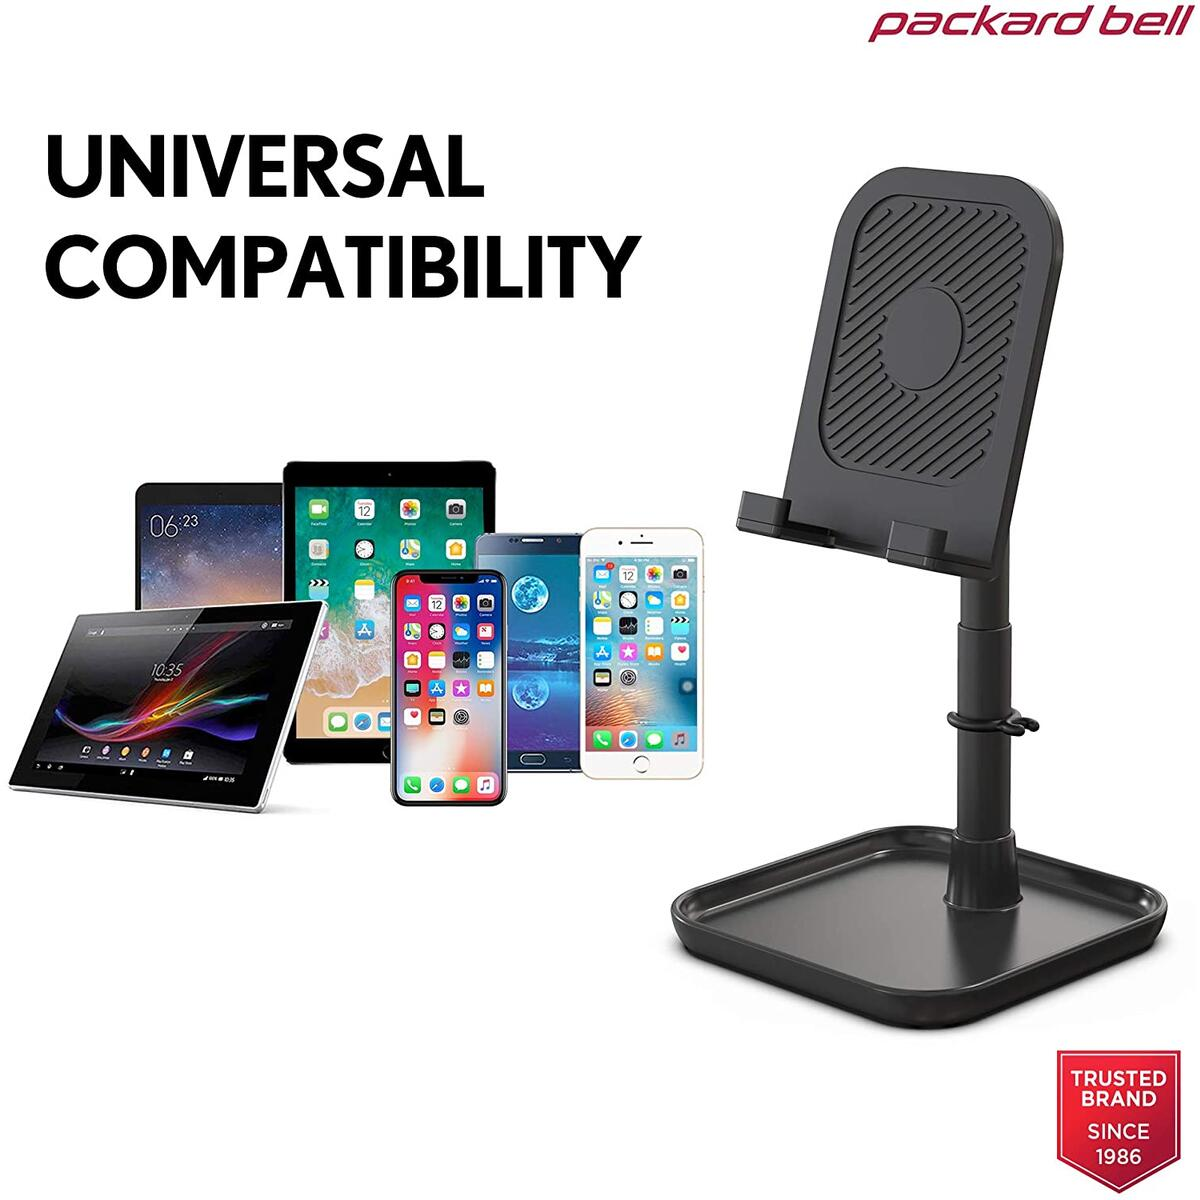 Adjustable Cell Phone Stand and Weighted Base for Smartphone, Tablet, or Handheld Gaming Device with Change Tray - Great for all iPhones, iPads, Switch, and Galaxy models